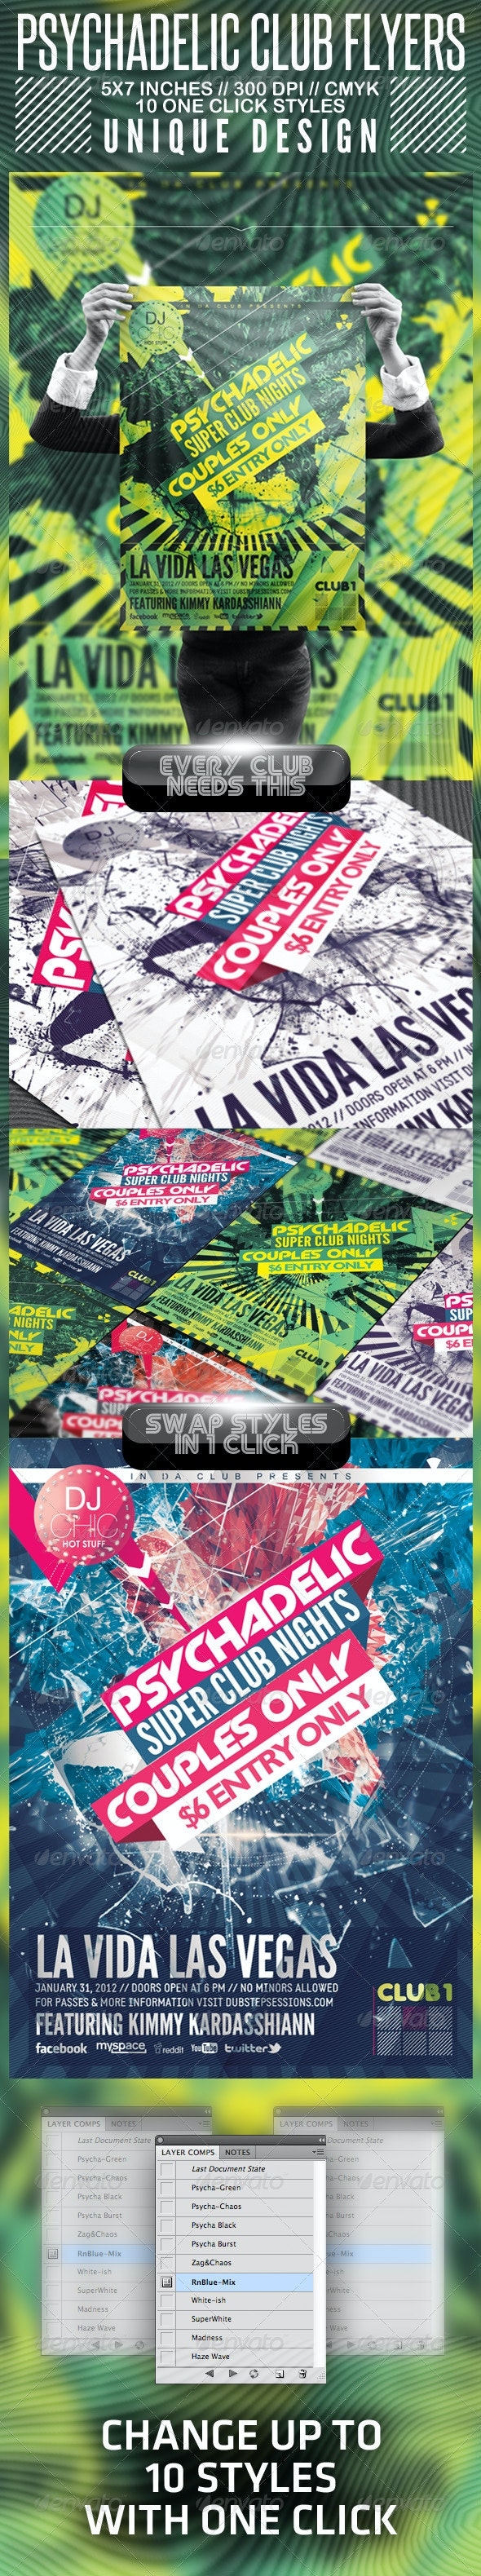 Psychedelic Club Flyer   - Clubs & Parties Events